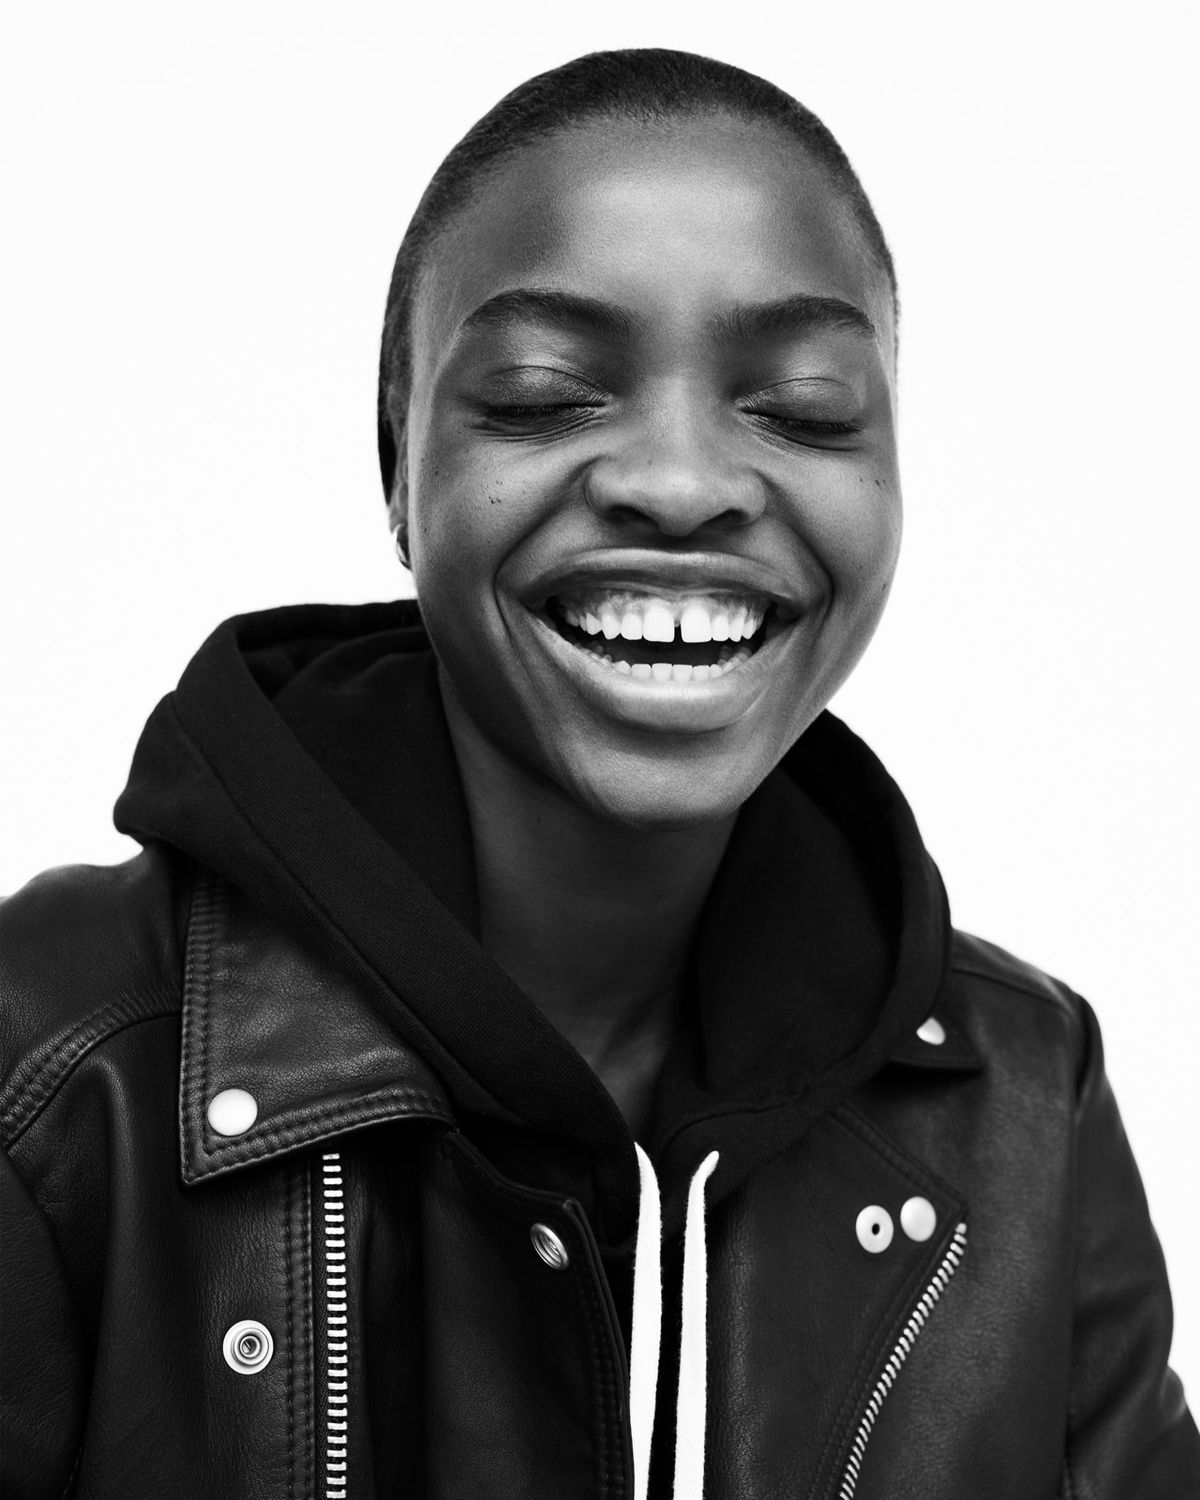 Black and white portrait of a woman smiling wearing a black hoodie under a black